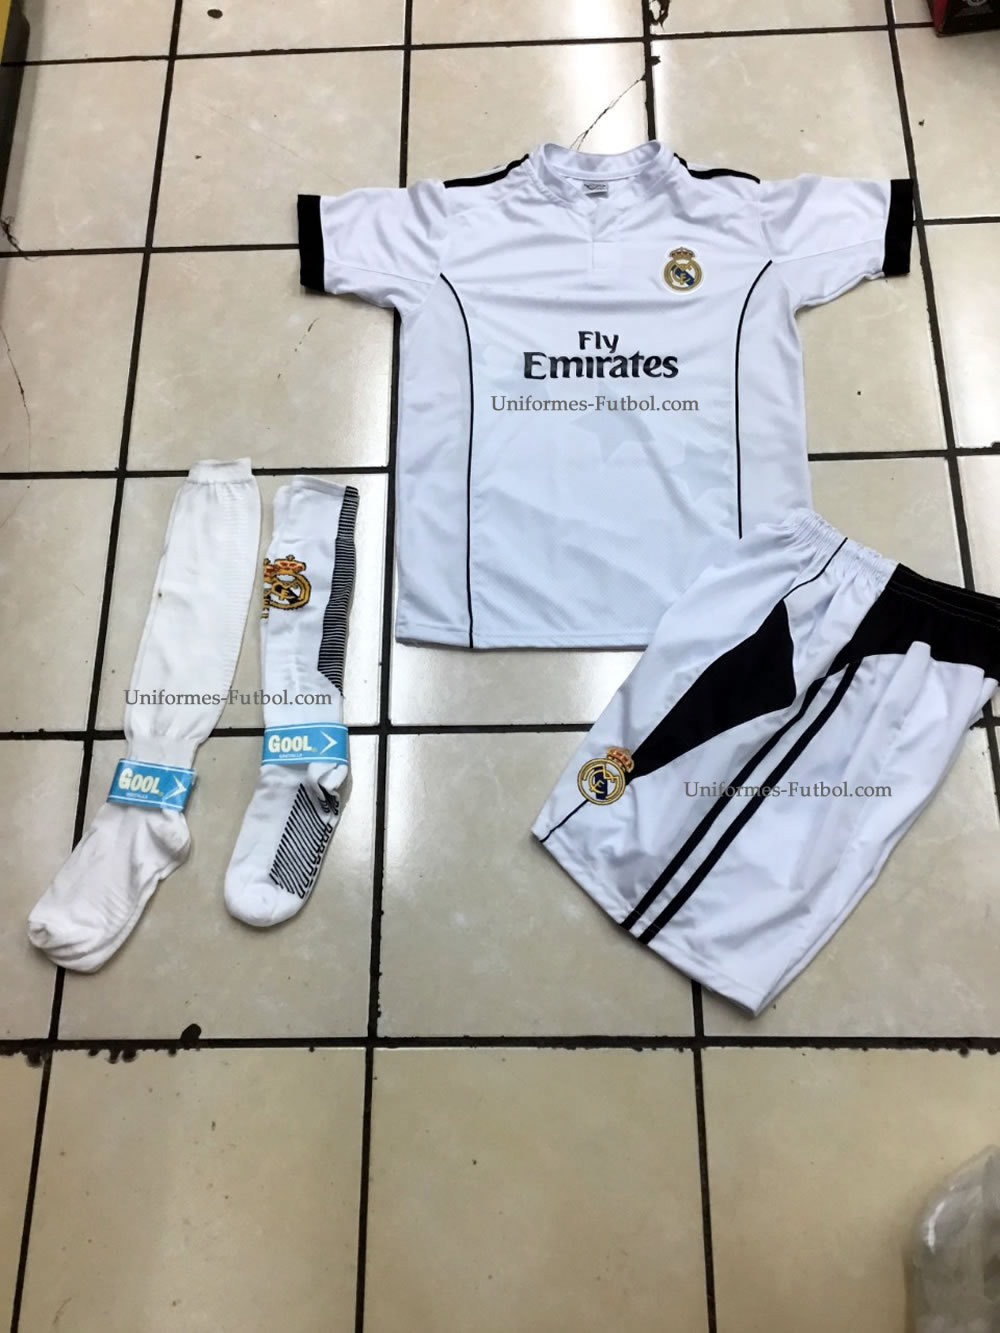 Uniforme de Futbol Completo de Local Real Madrid